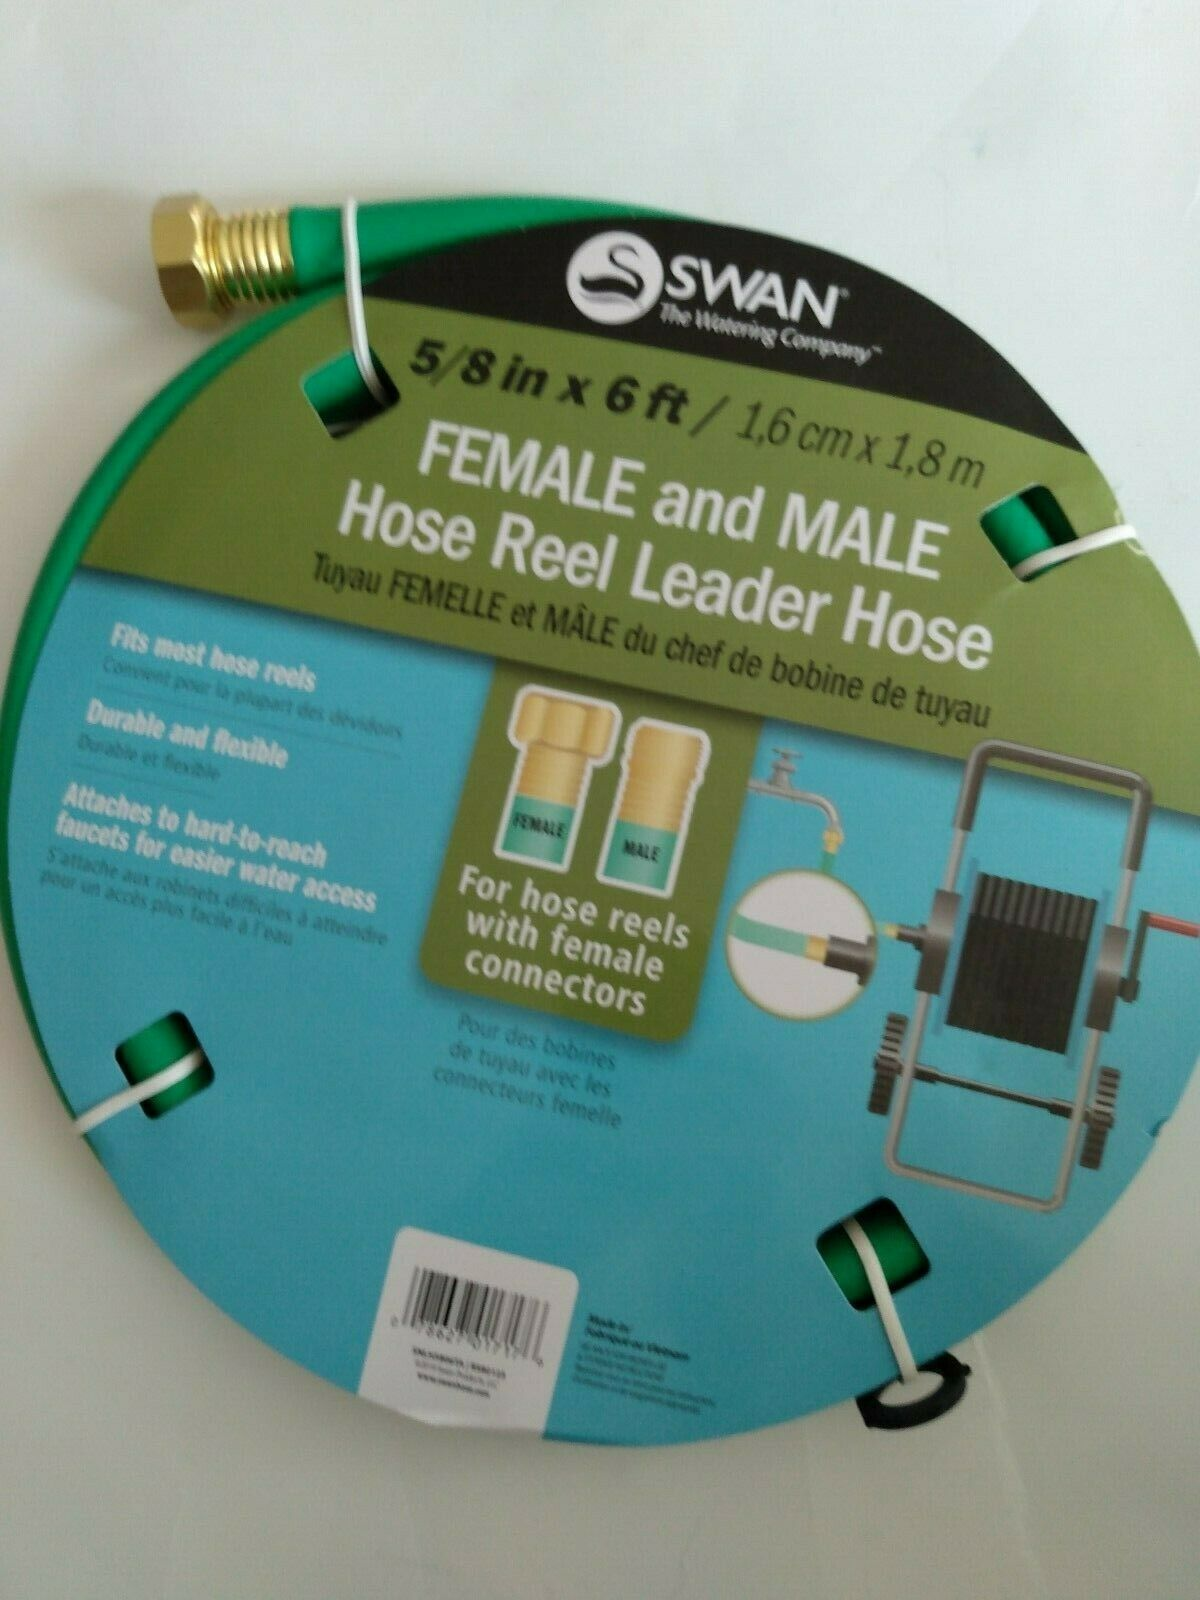 Swan Hose Reel Leader Hose with Male and Female Connection, Green